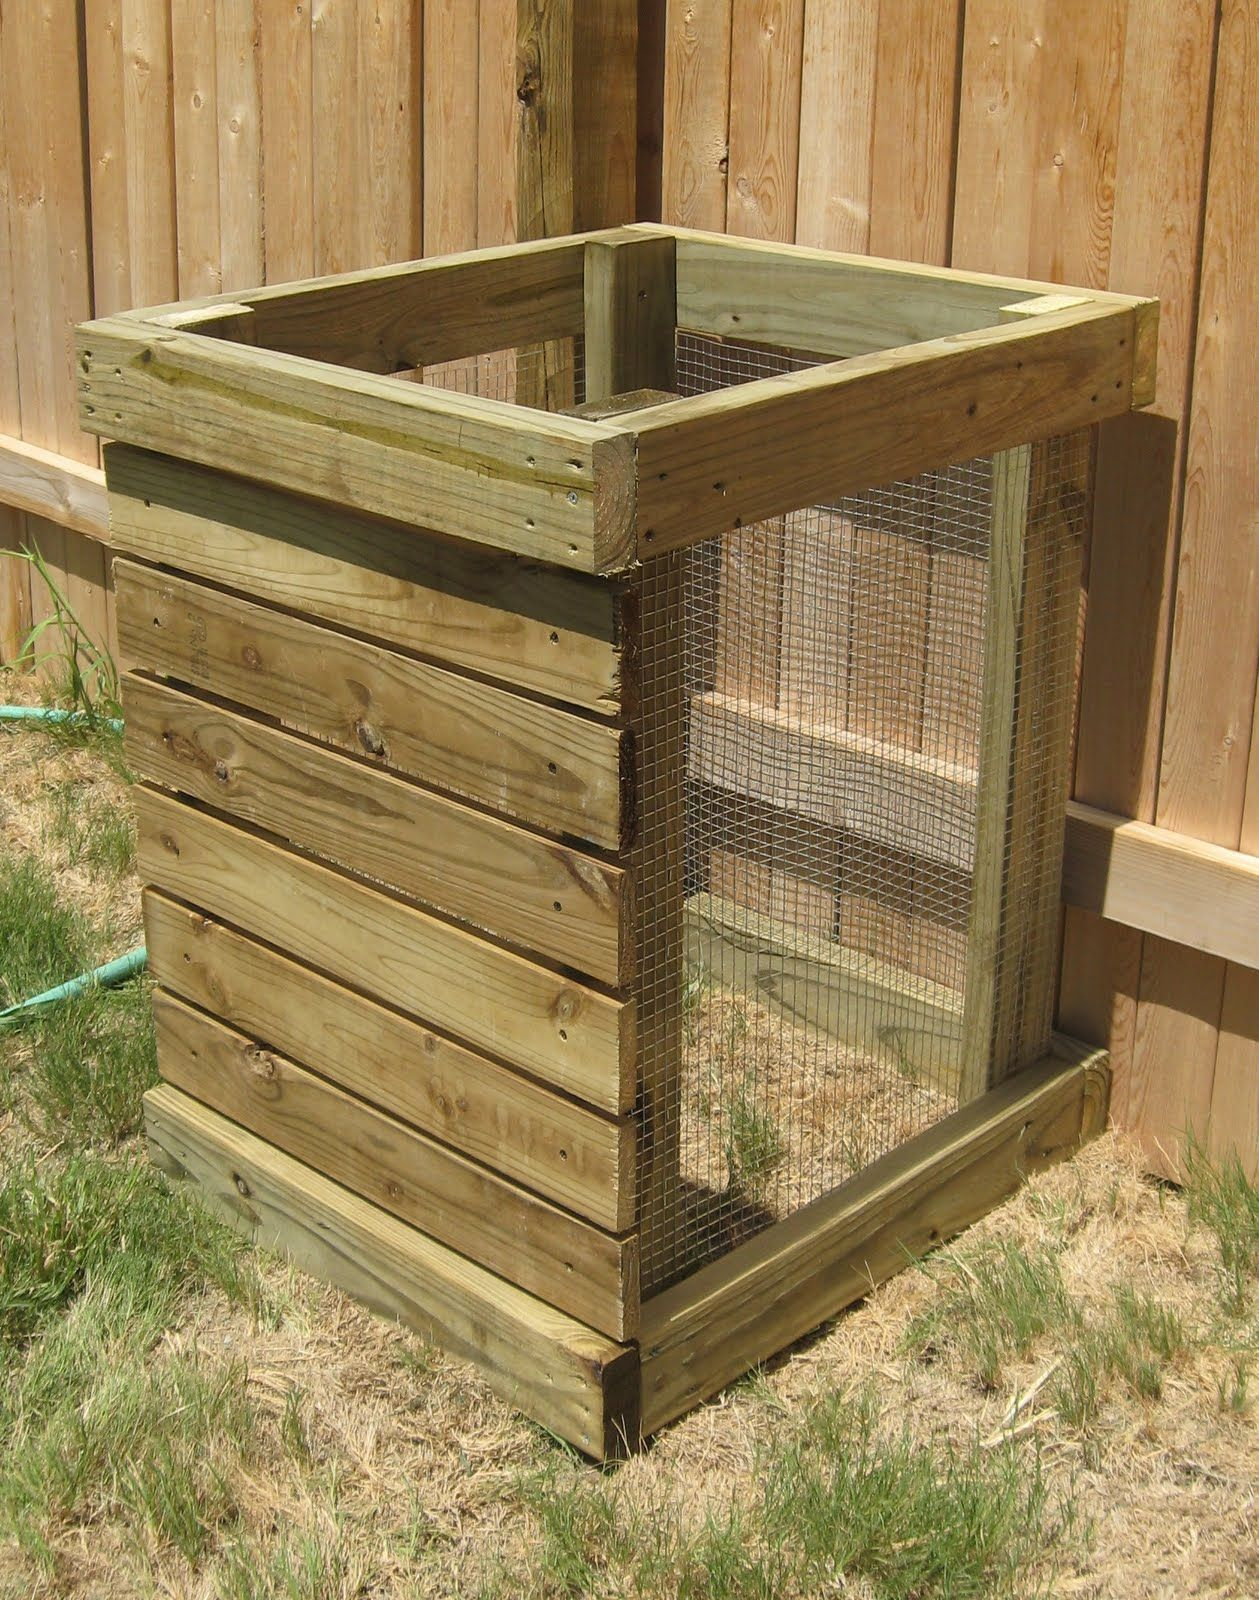 homemade compost bin have been doing my research about organic